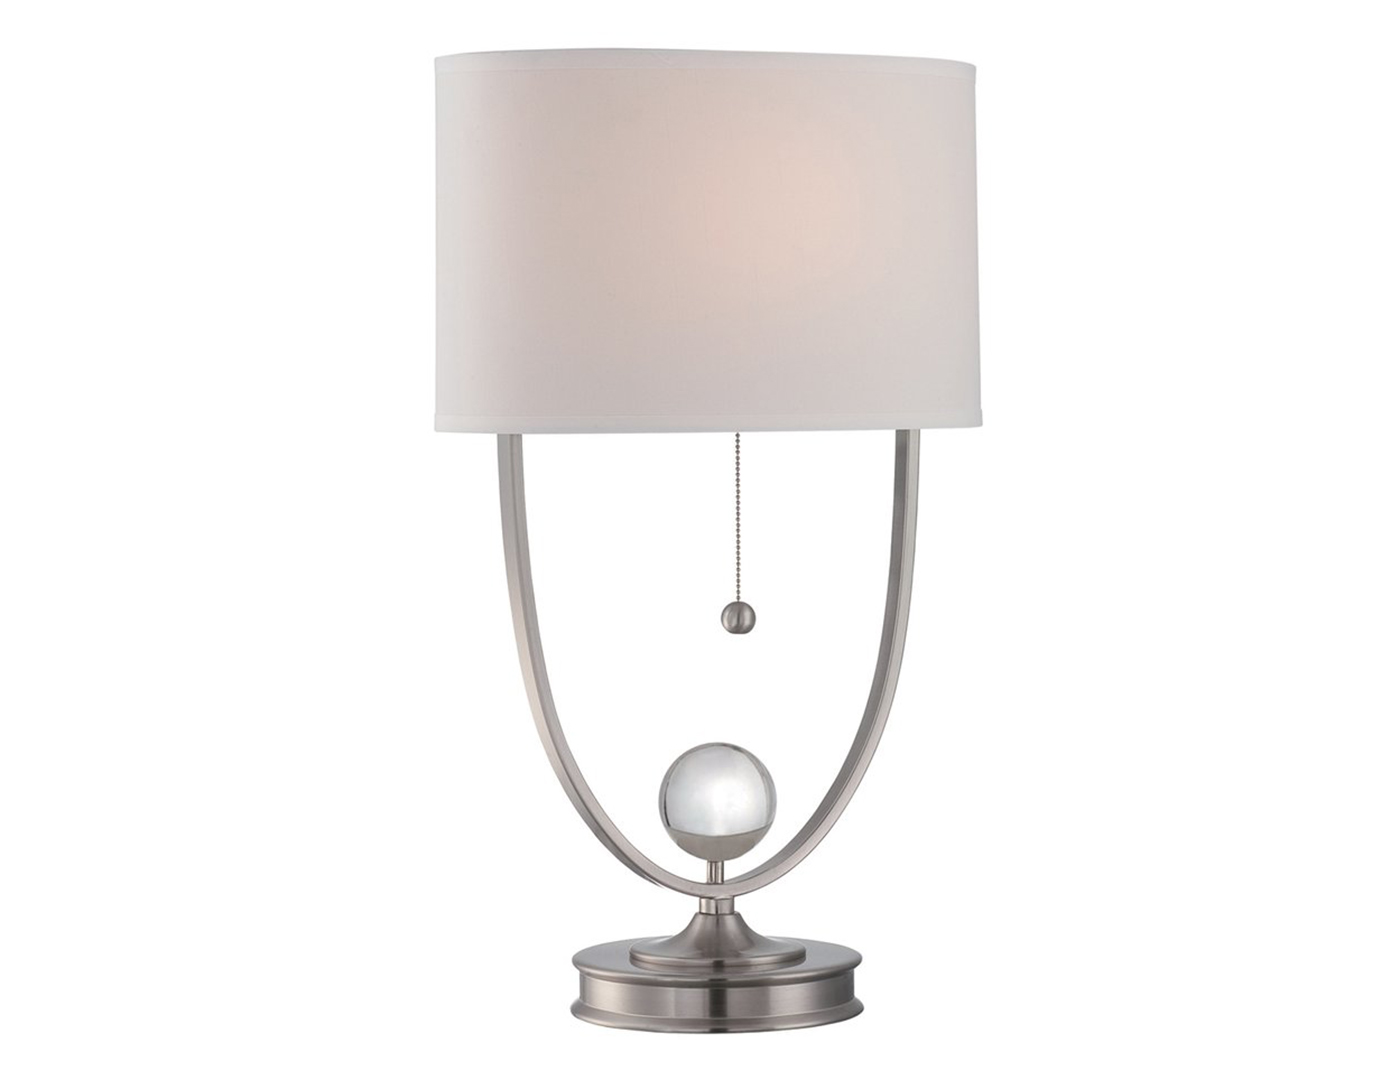 Steinhafels bling glass table lamp polished steel and crystal table lamp geotapseo Images